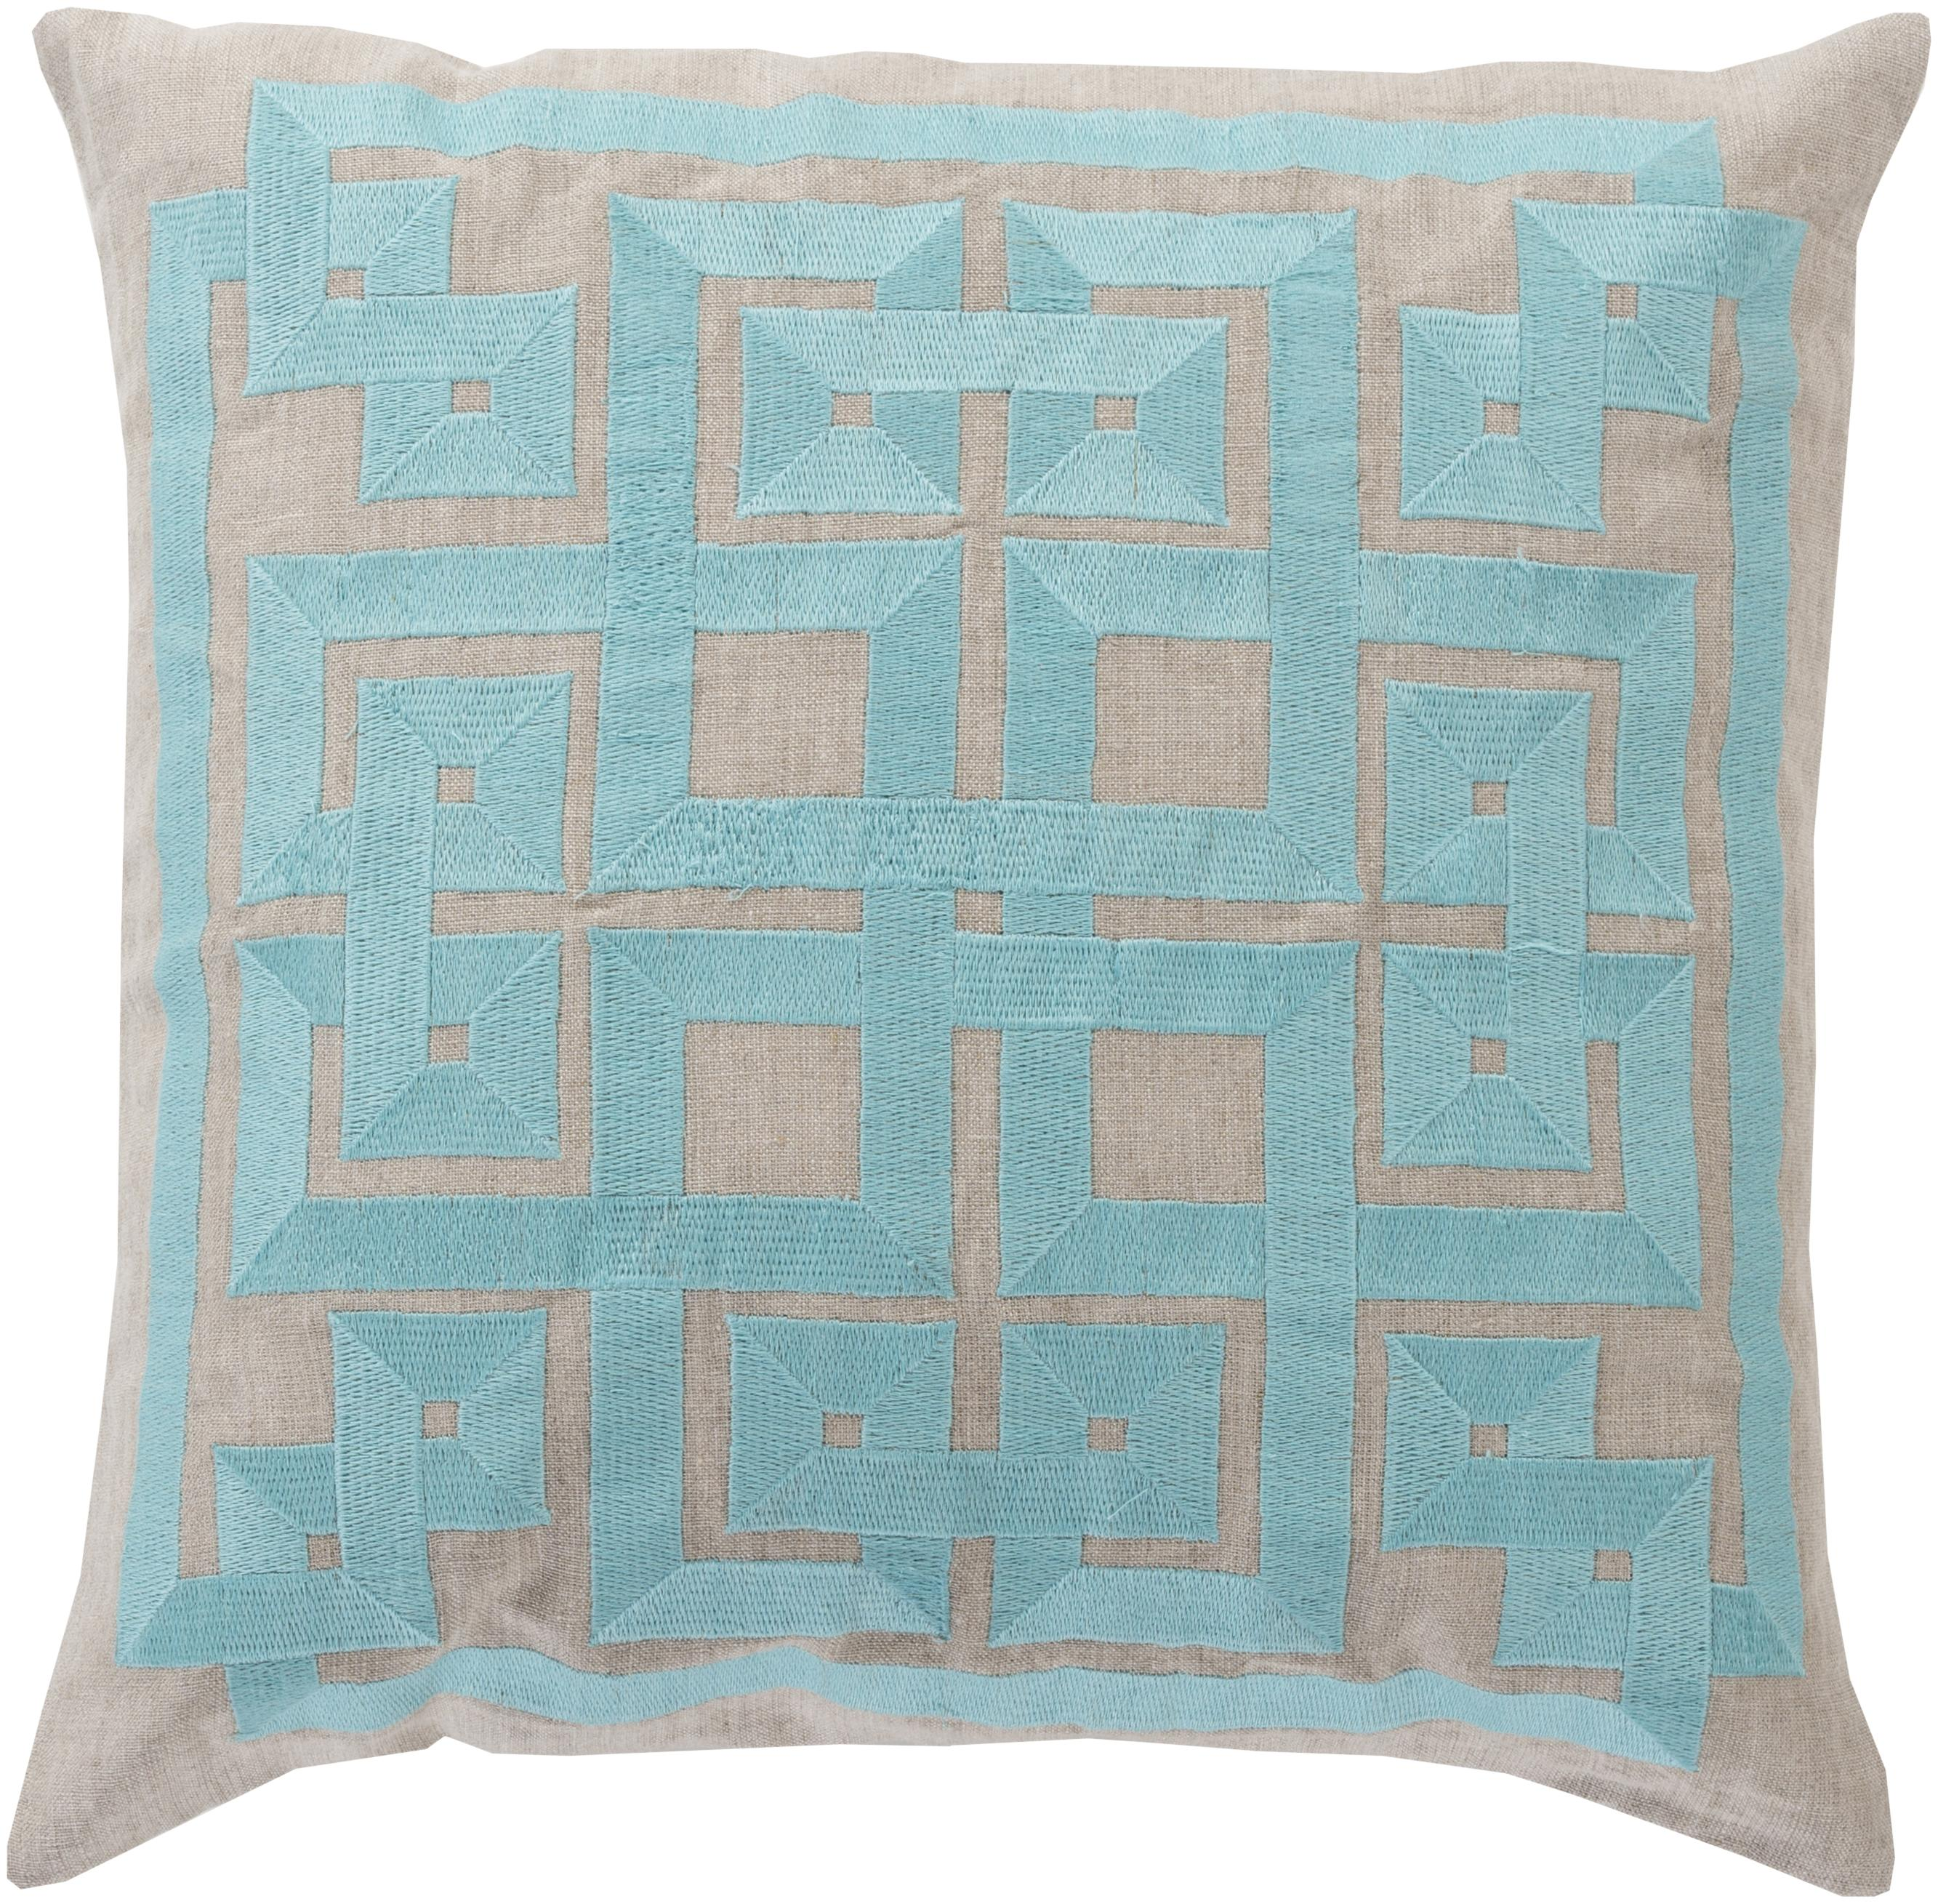 "Surya Pillows 22"" x 22"" Pillow - Item Number: LD009-2222P"